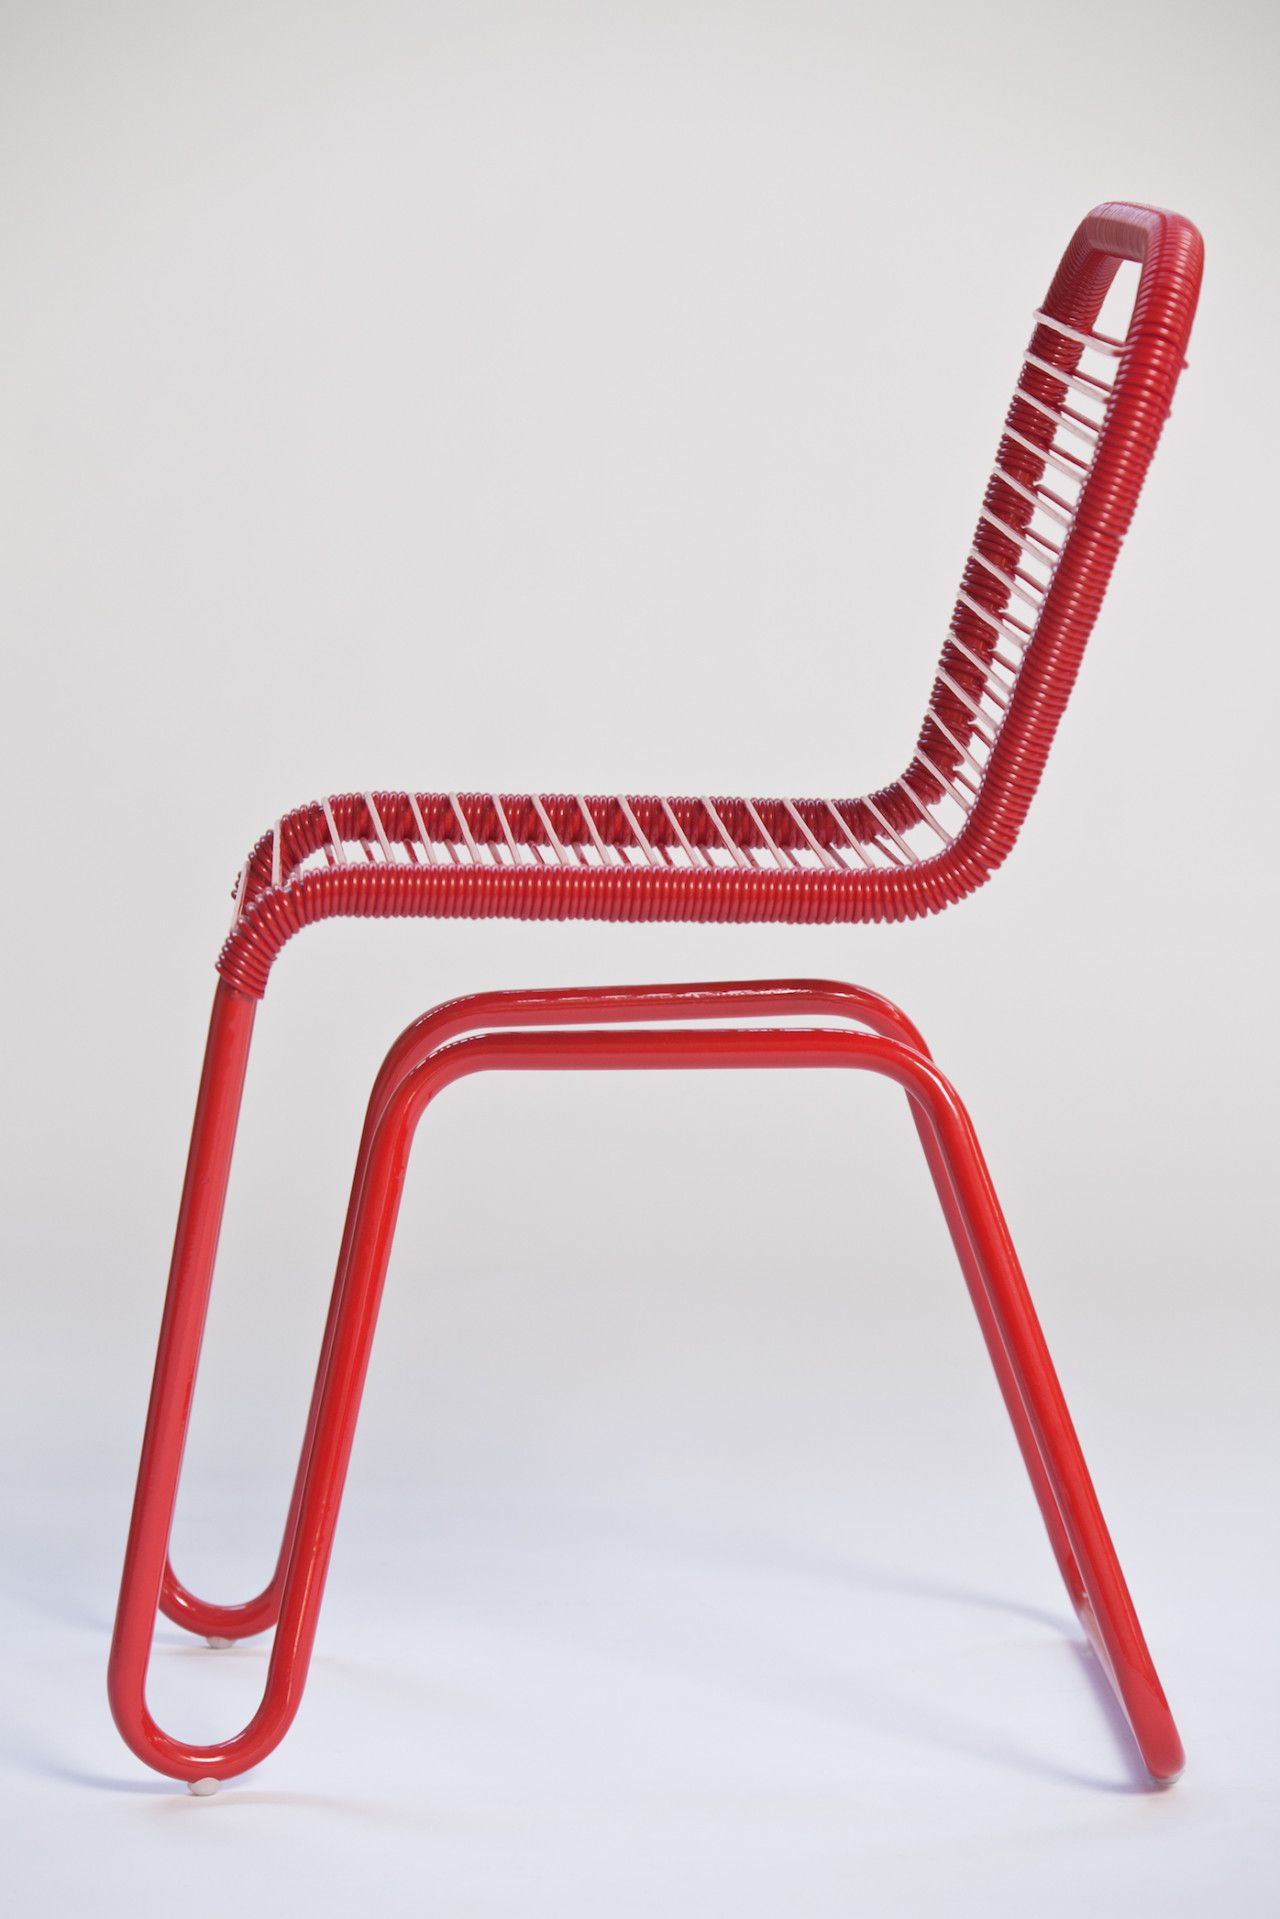 Inspired By Bus Seats The Loop L60 Chair Mimics A Bus Ride Bus  # Tupi Muebles Martinez